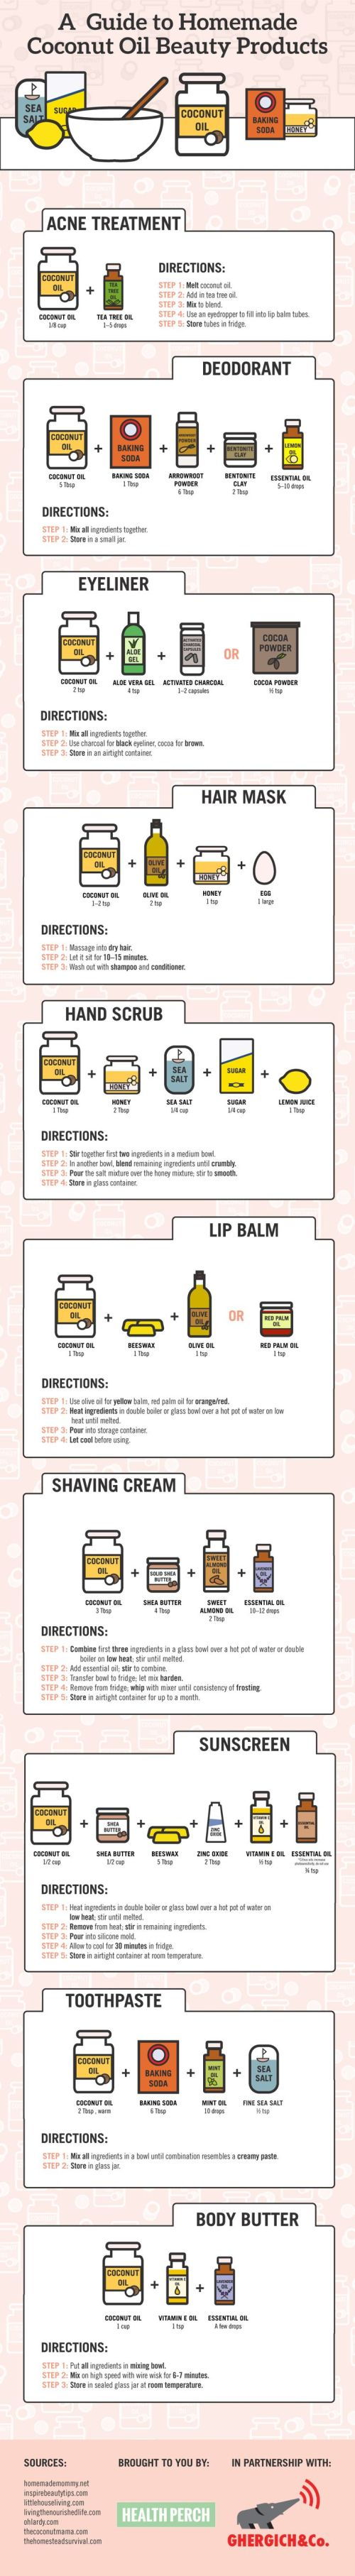 Other DIY Uses For Coconut Oil